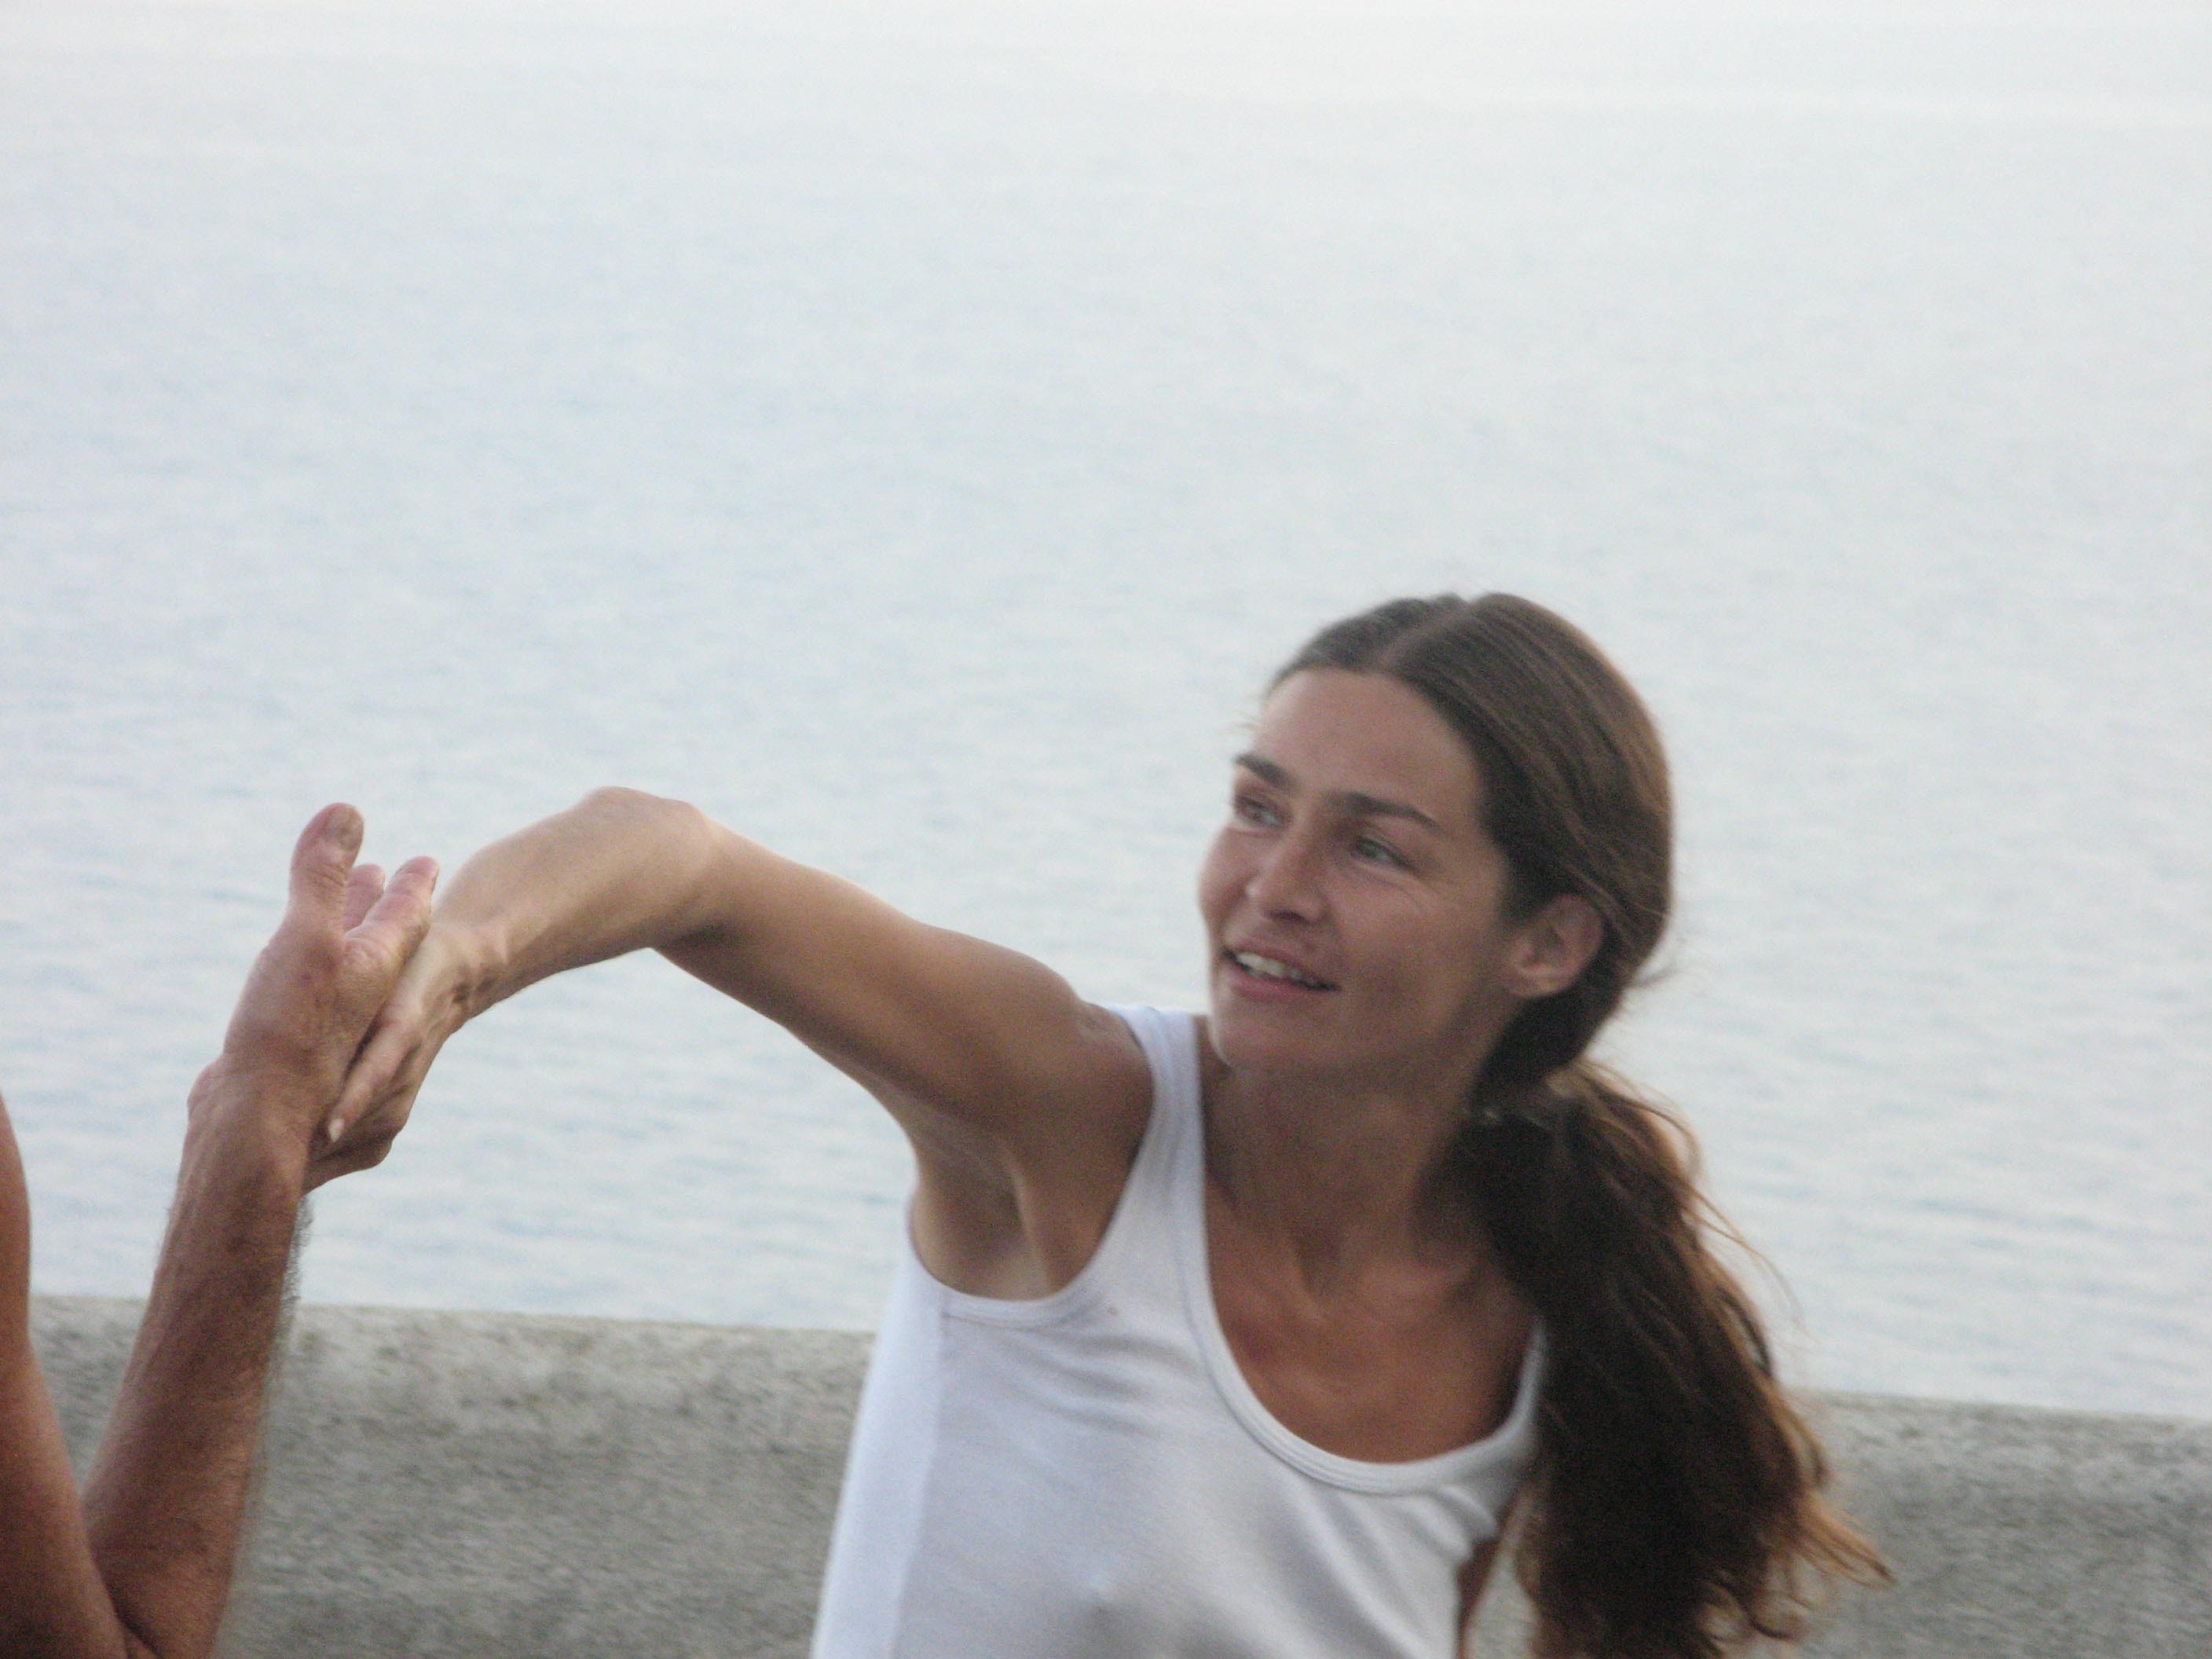 Alicudi-Insel-Tai chi push hands 3